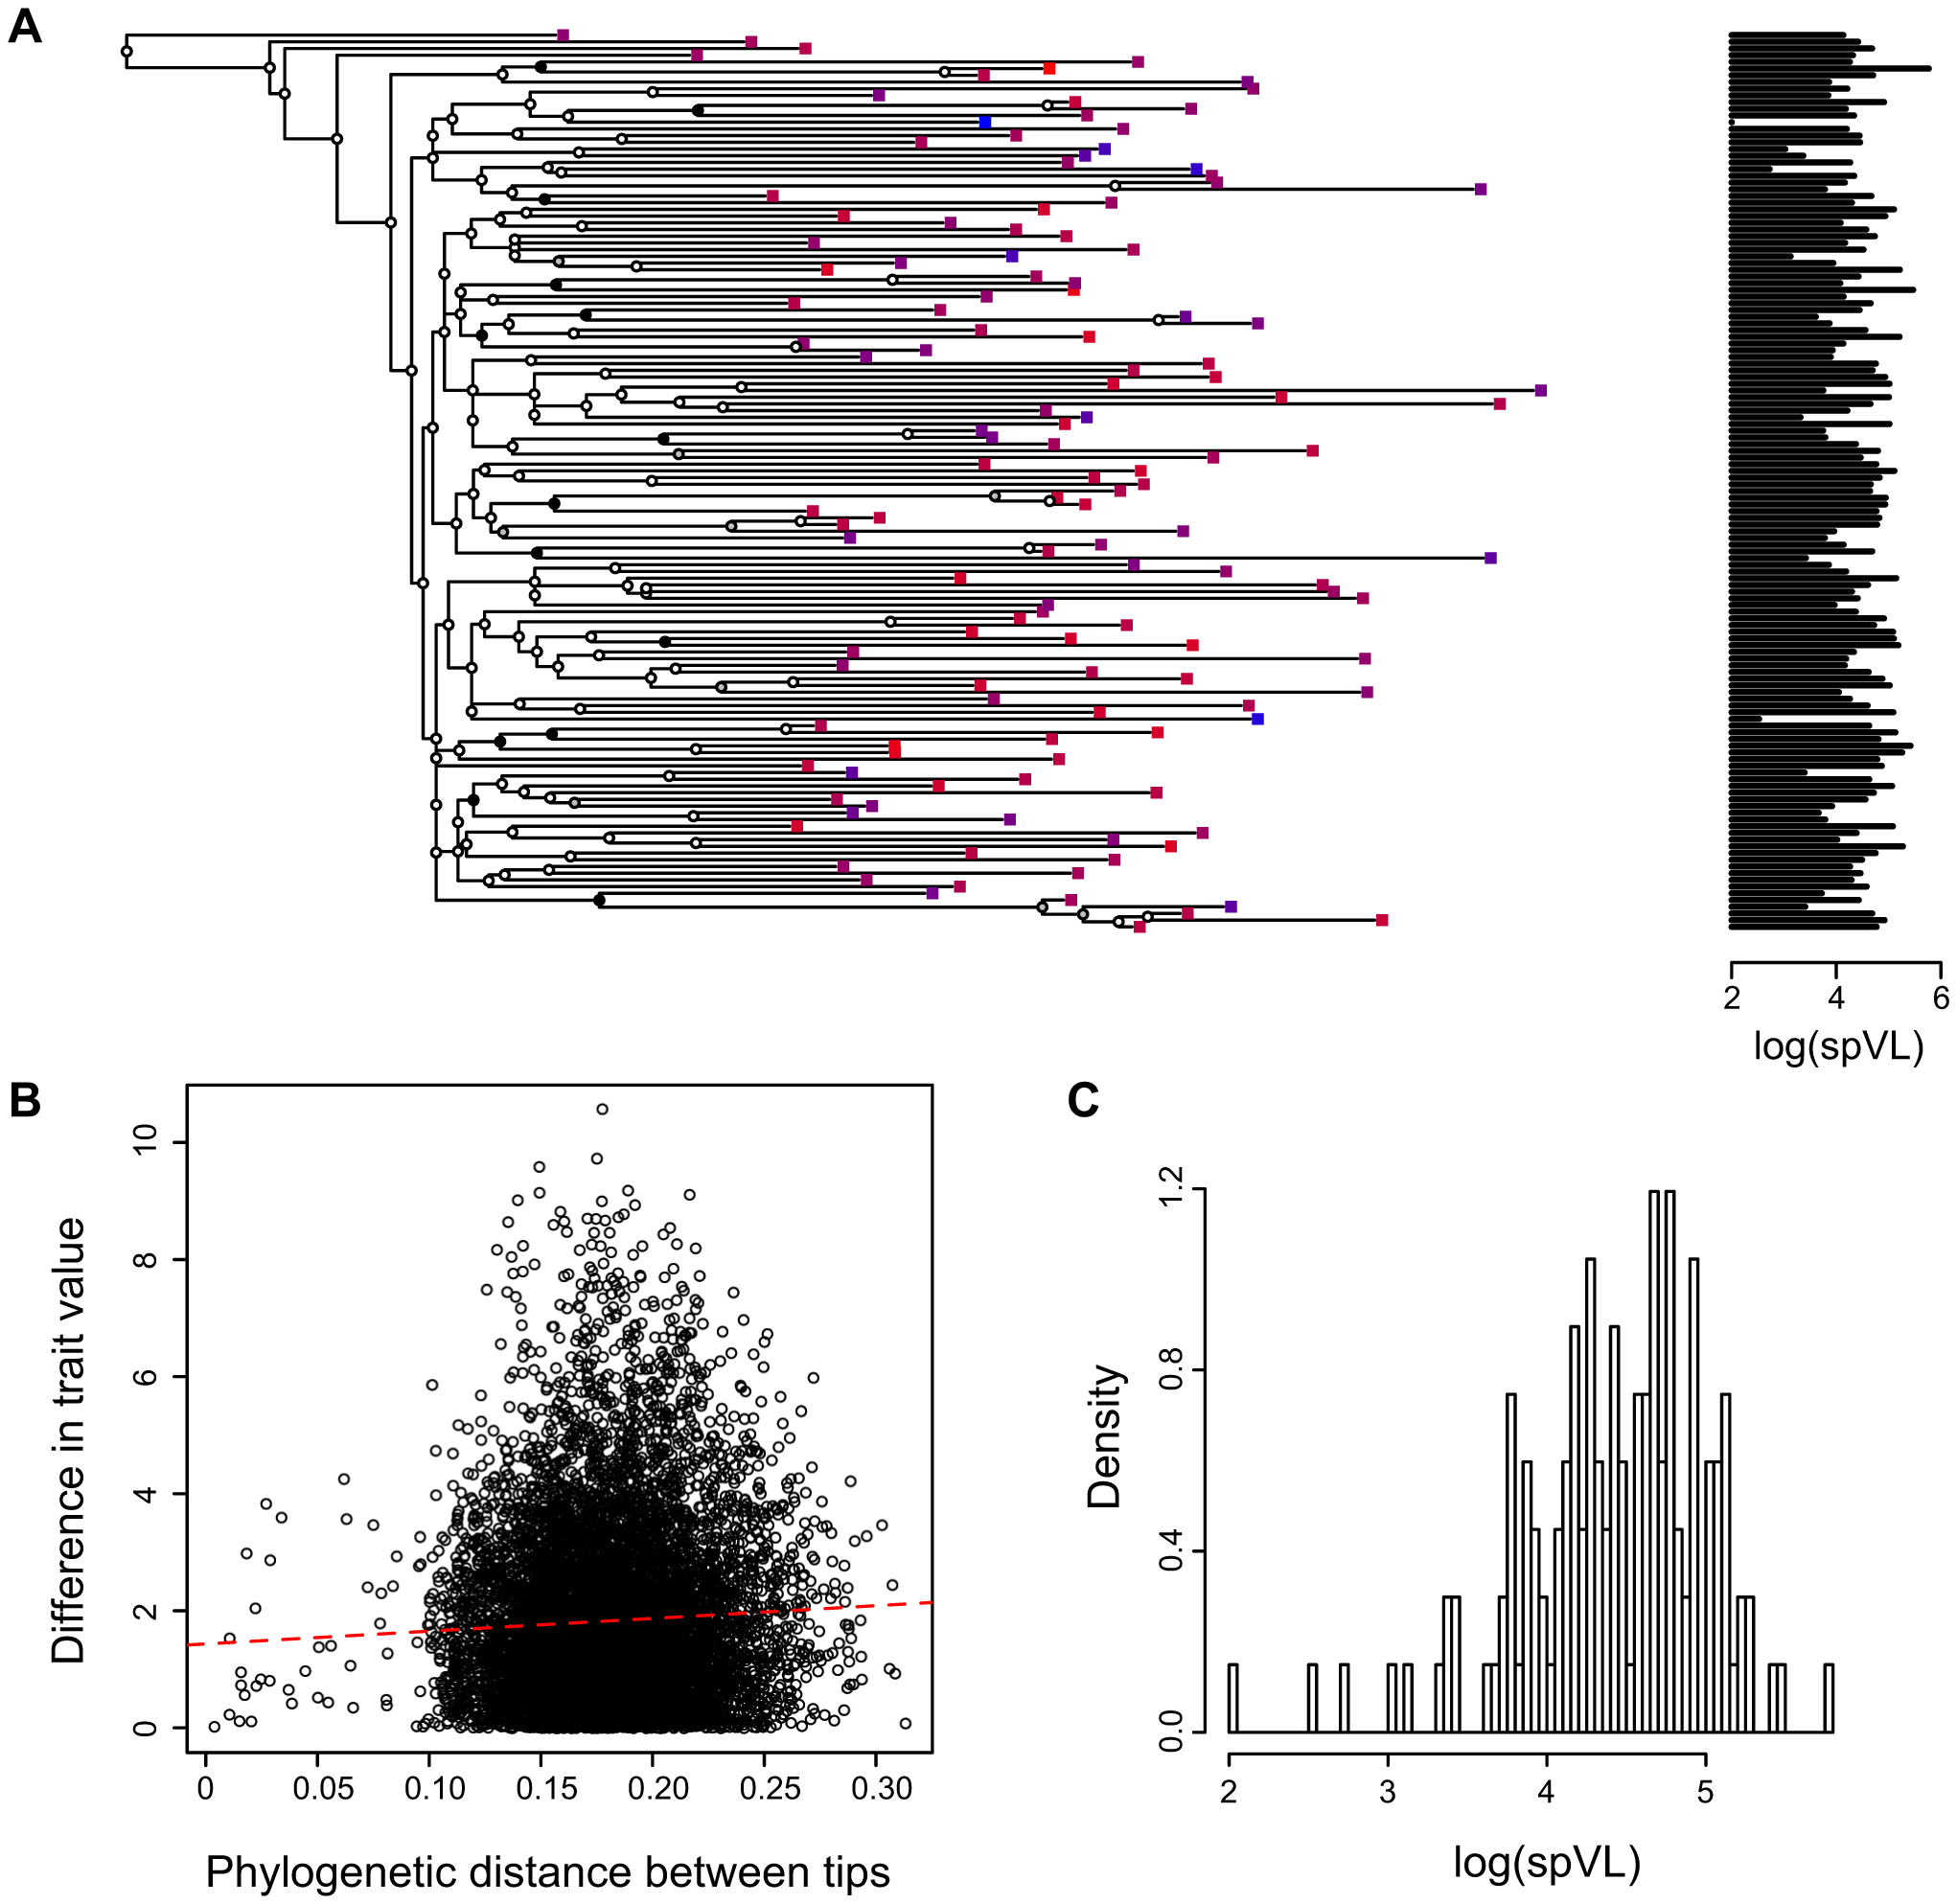 Combining phylogenies and trait values in the MSM strict dataset.